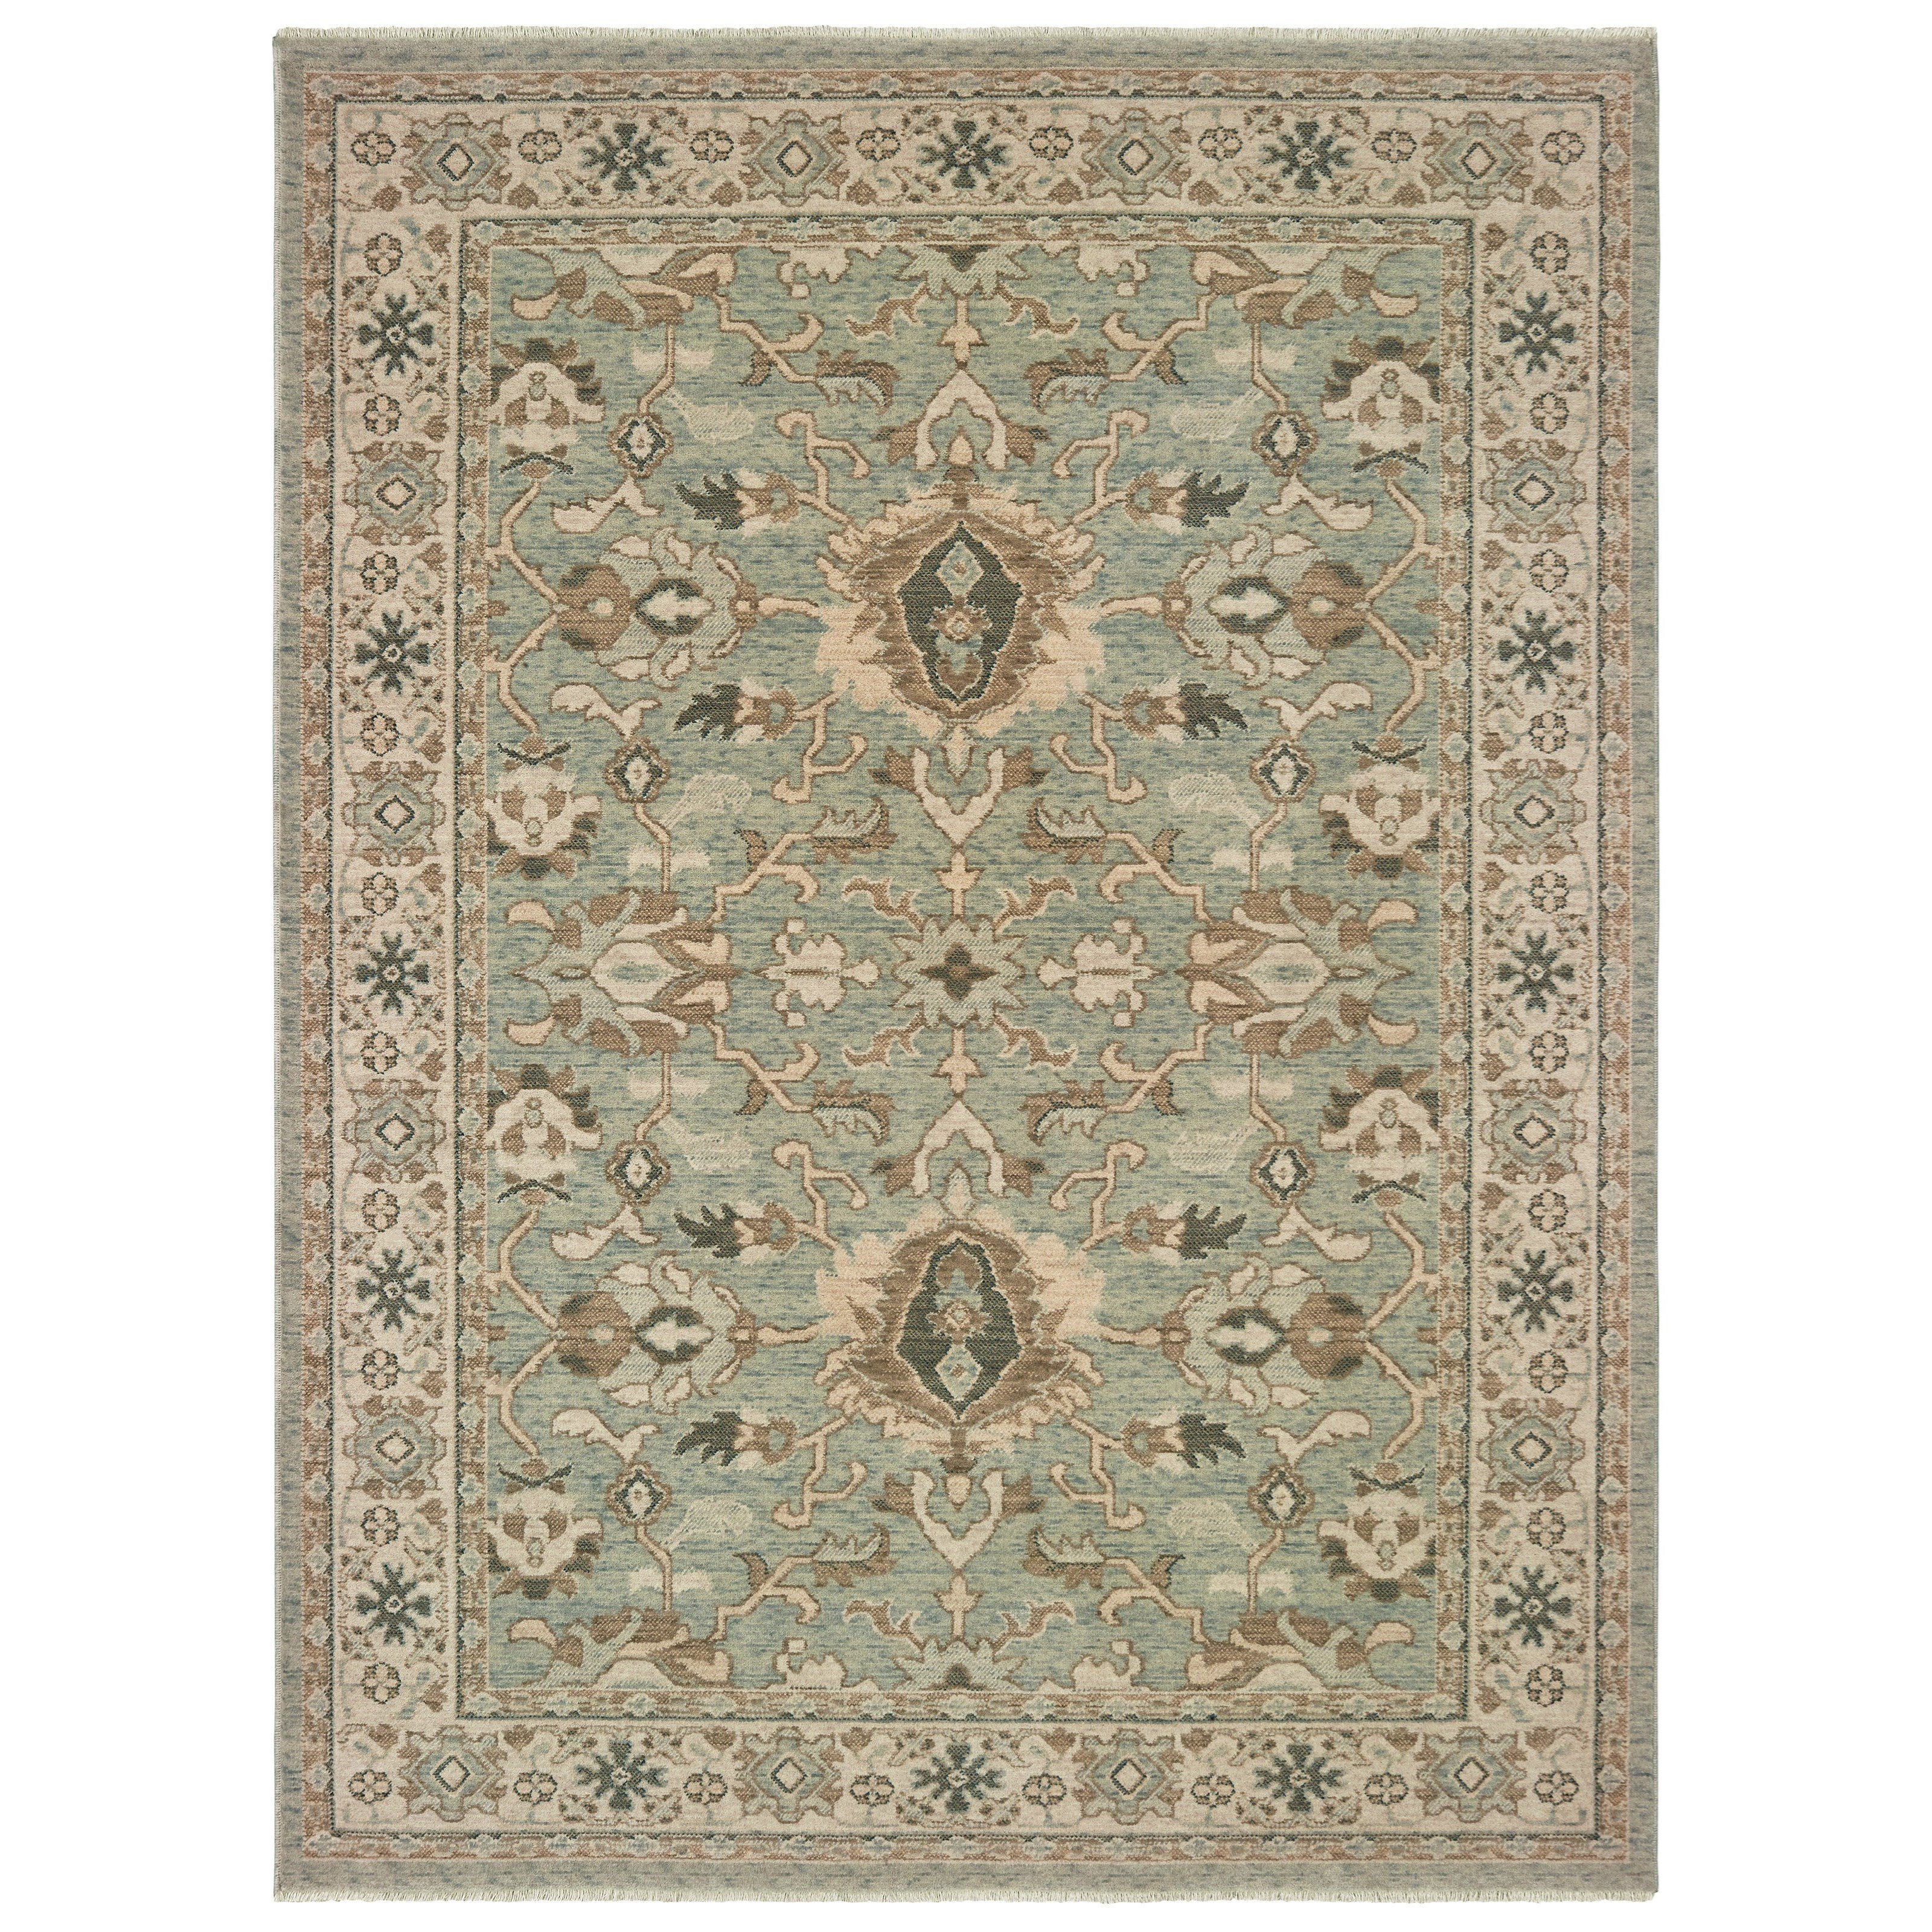 "Anatolia 5' 3"" X  7' 6"" Rectangle Rug by Oriental Weavers at Steger's Furniture"